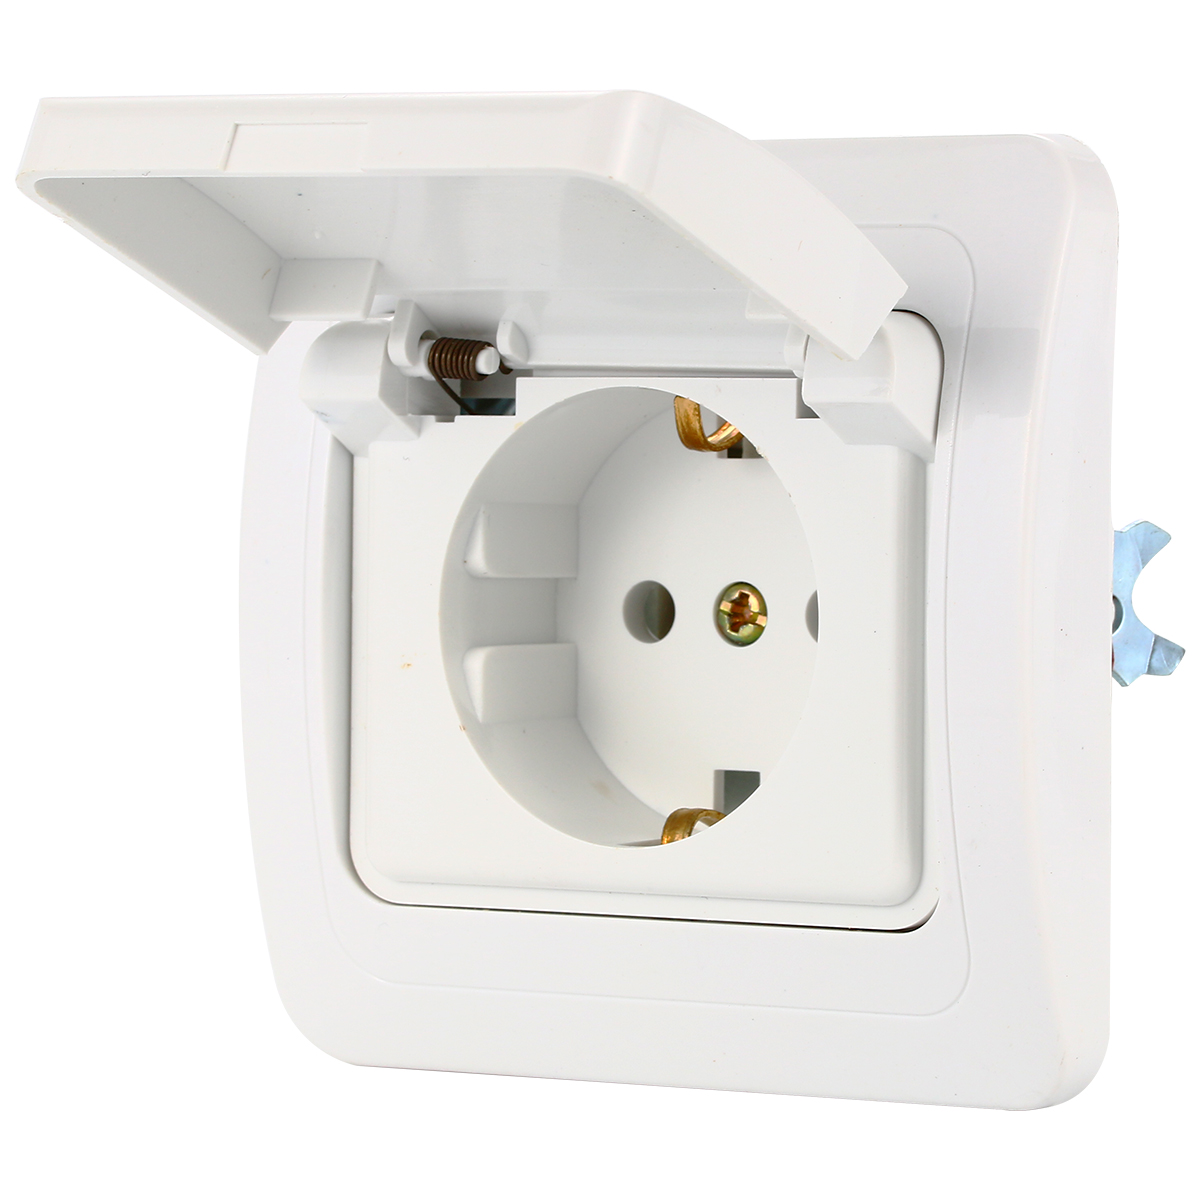 hight resolution of germany european ac power socket 16a 250v korea wiring receptacle power outlet schuko bi132 on aliexpress com alibaba group